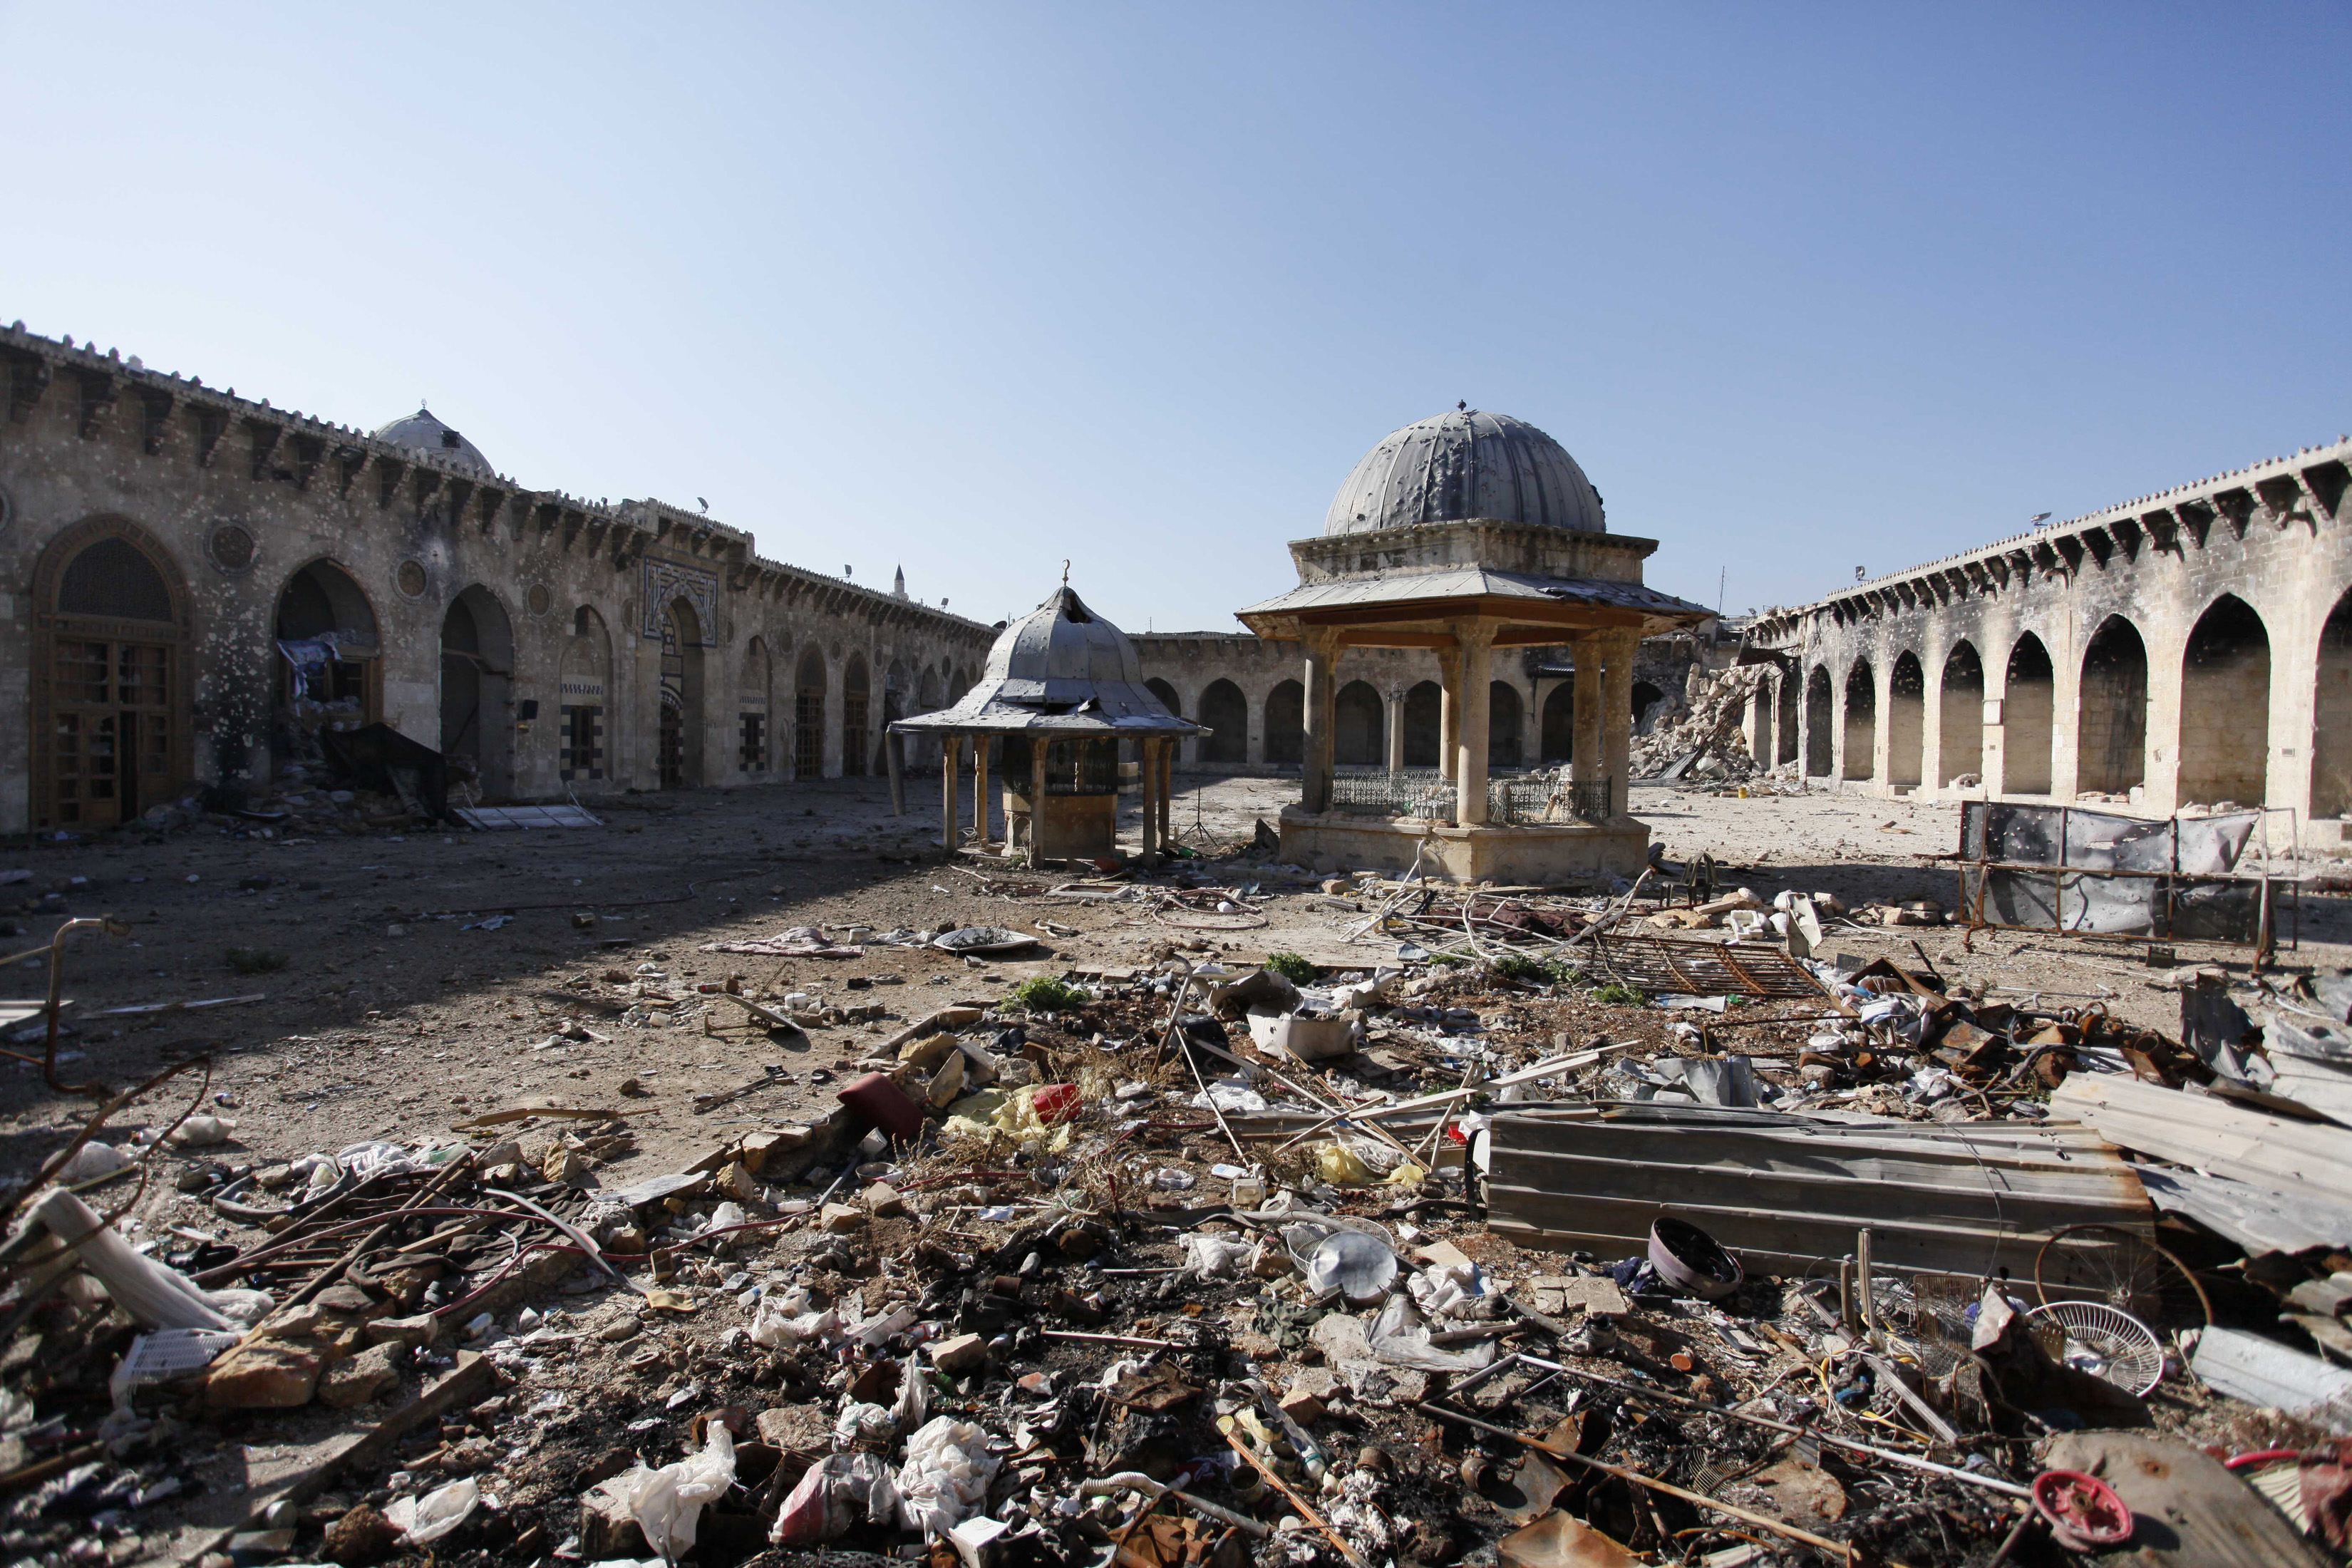 A general view of the damage in the Umayyad Mosque in Old Aleppo on Dec. 15, 2013. Photo by Molhem Barakat/Reuters